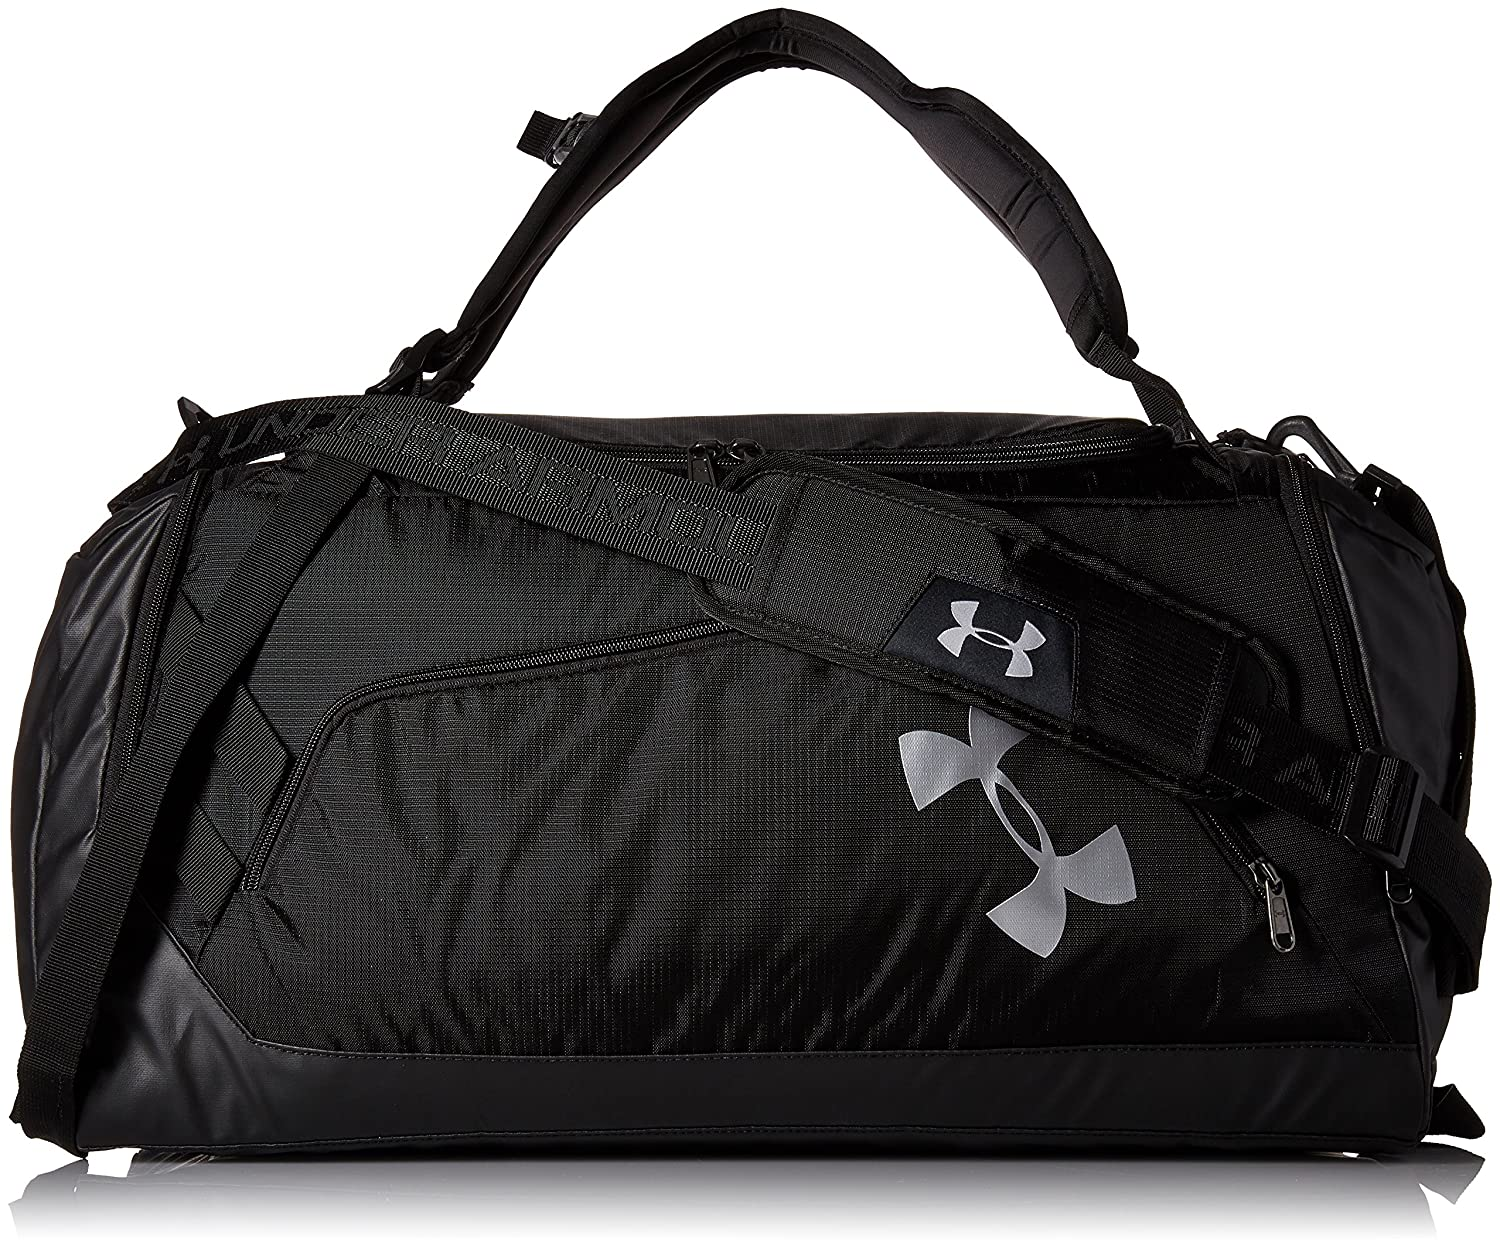 3dc0de04f4 Under Armour Storm Contain Backpack Duffle 3.0